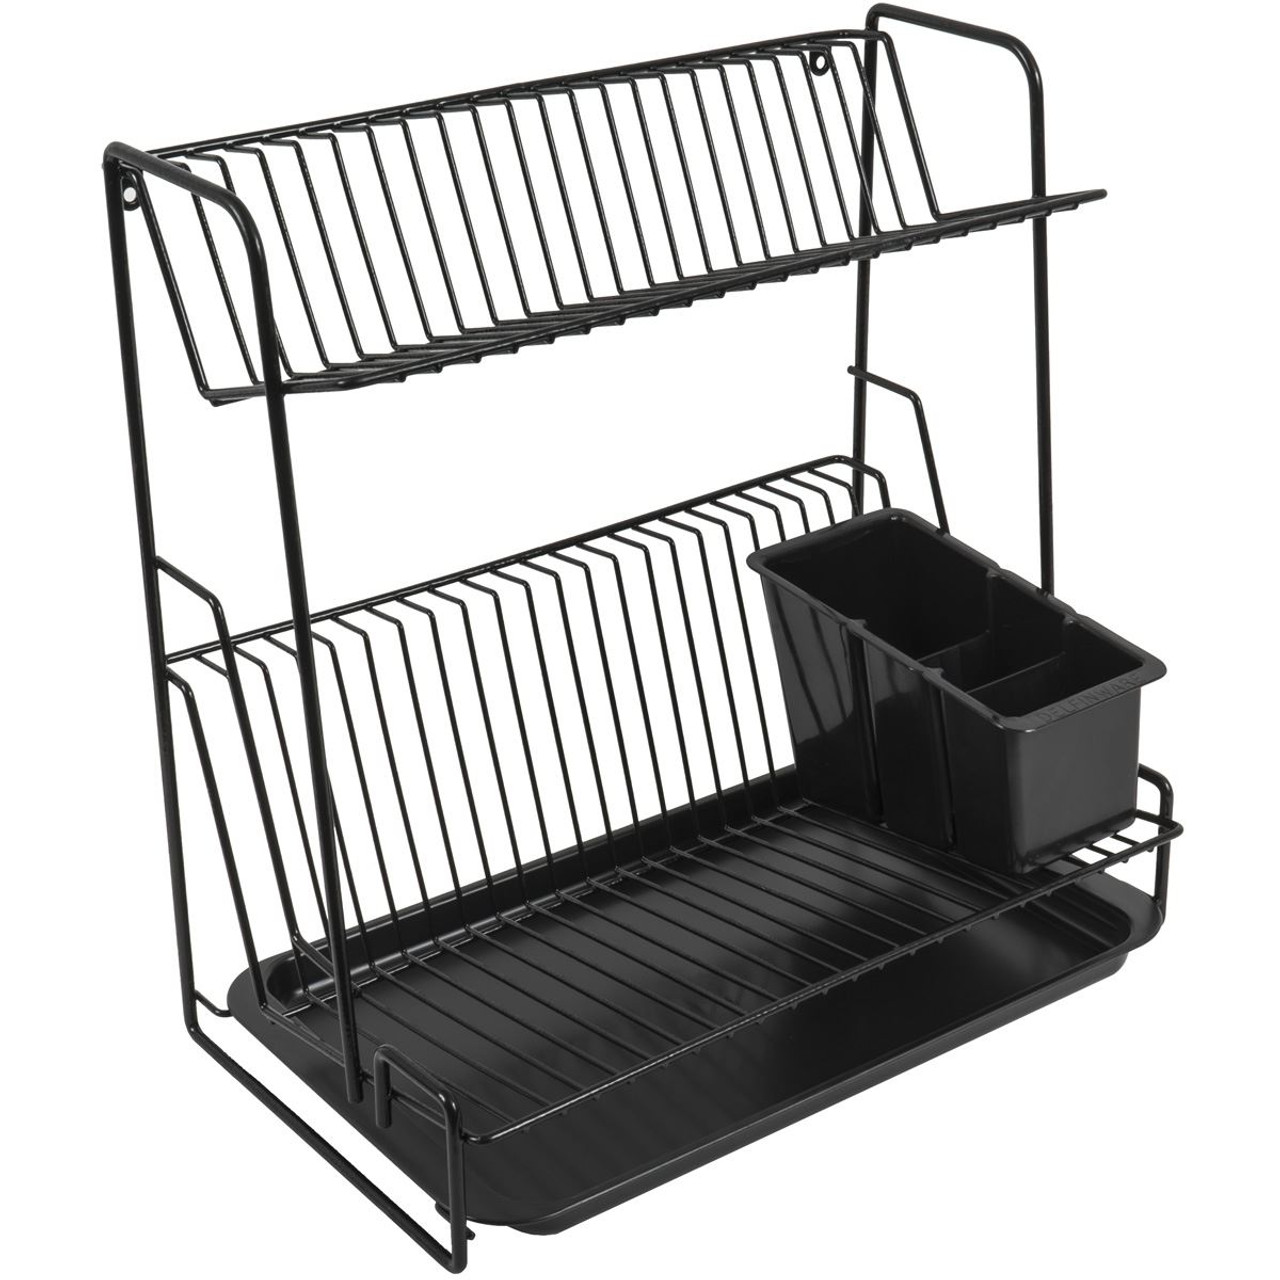 Delfinware 2 Tier Plate Rack Black